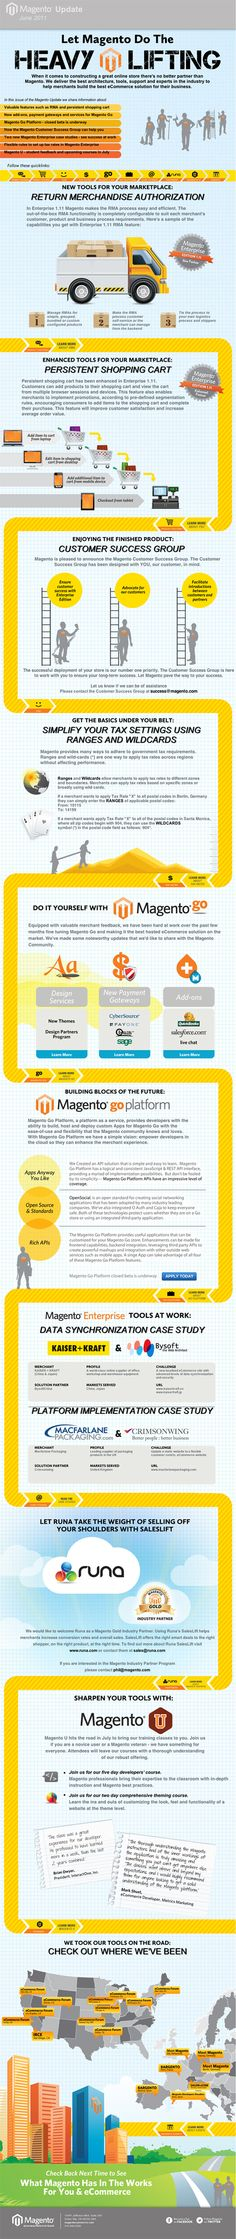 Let Magento do the heavy lifting #infographic #webdesign